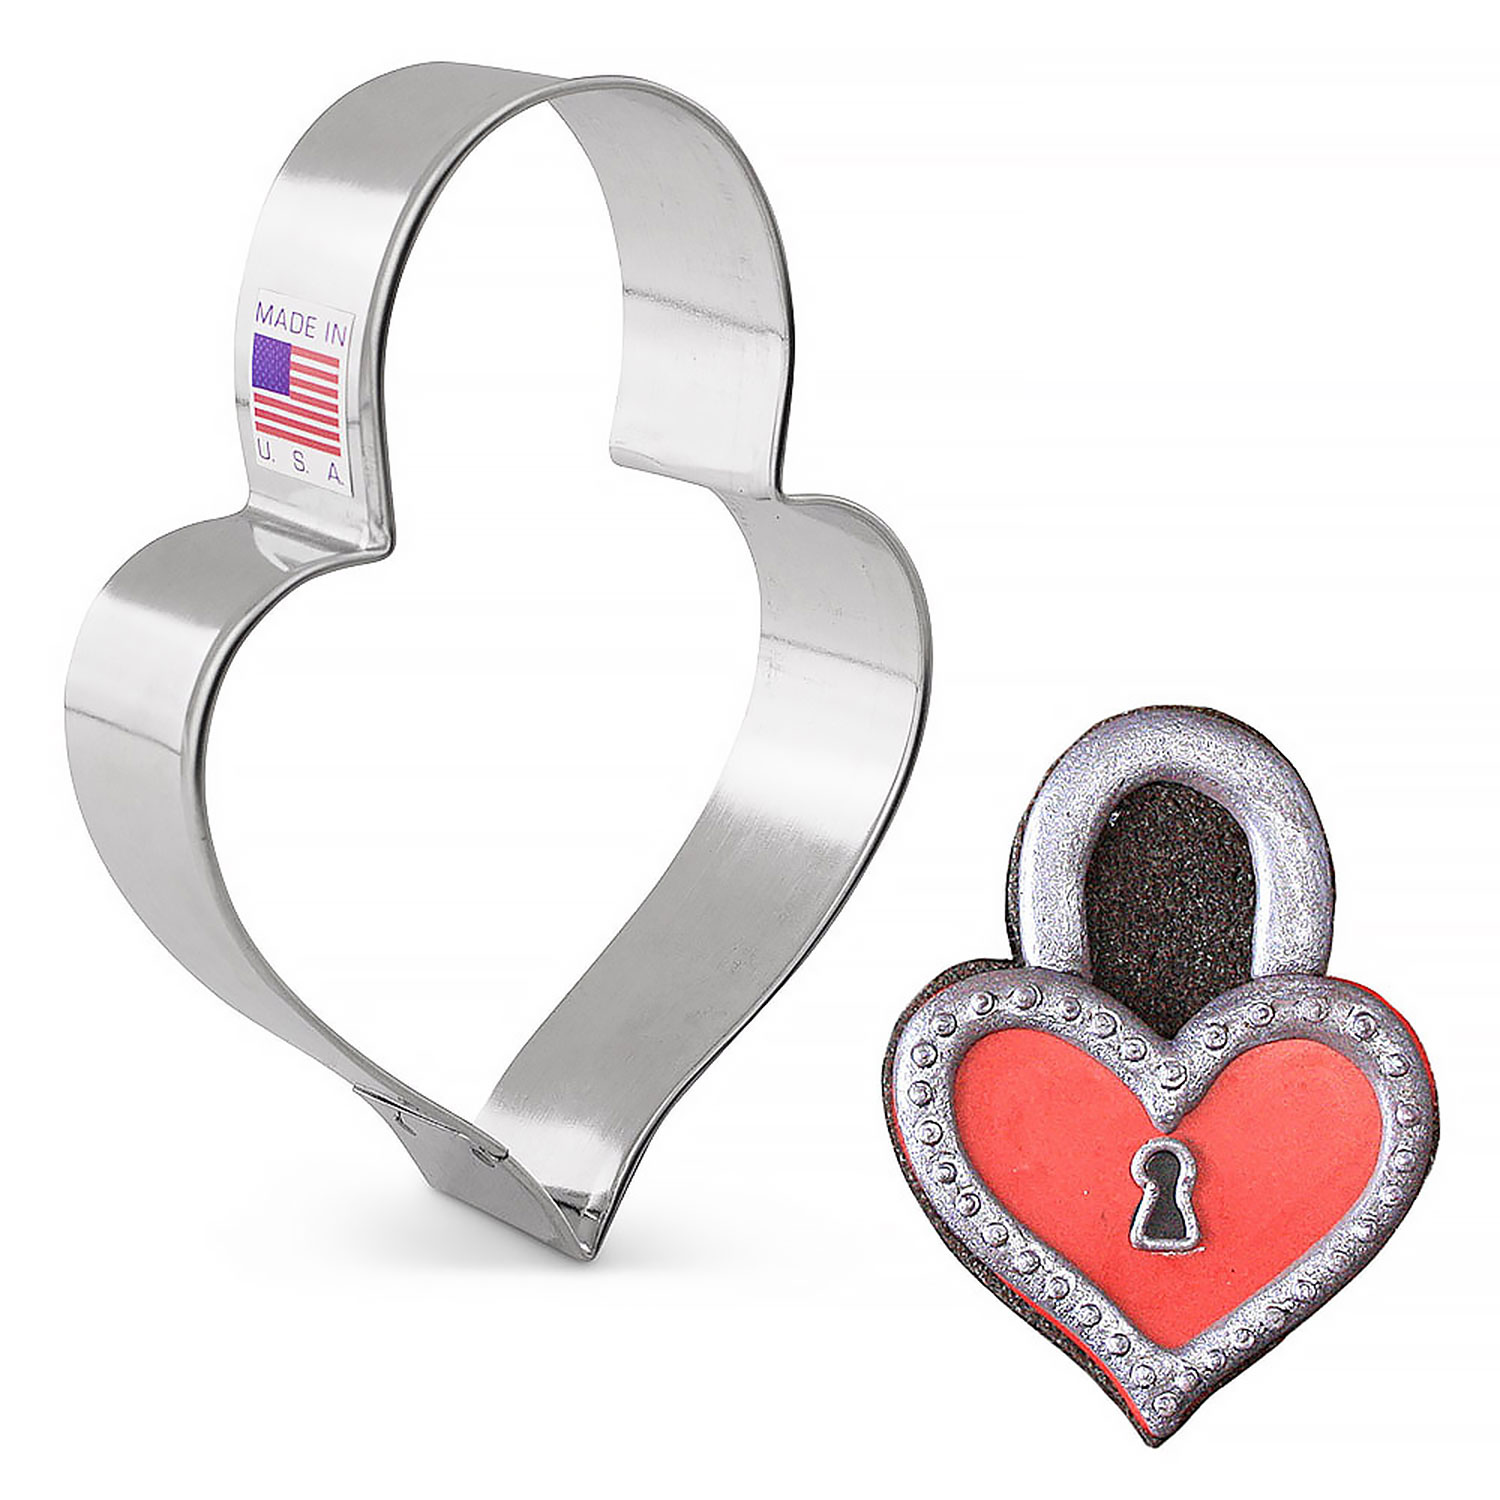 Padlock Heart Cookie Cutter by Lila Loa